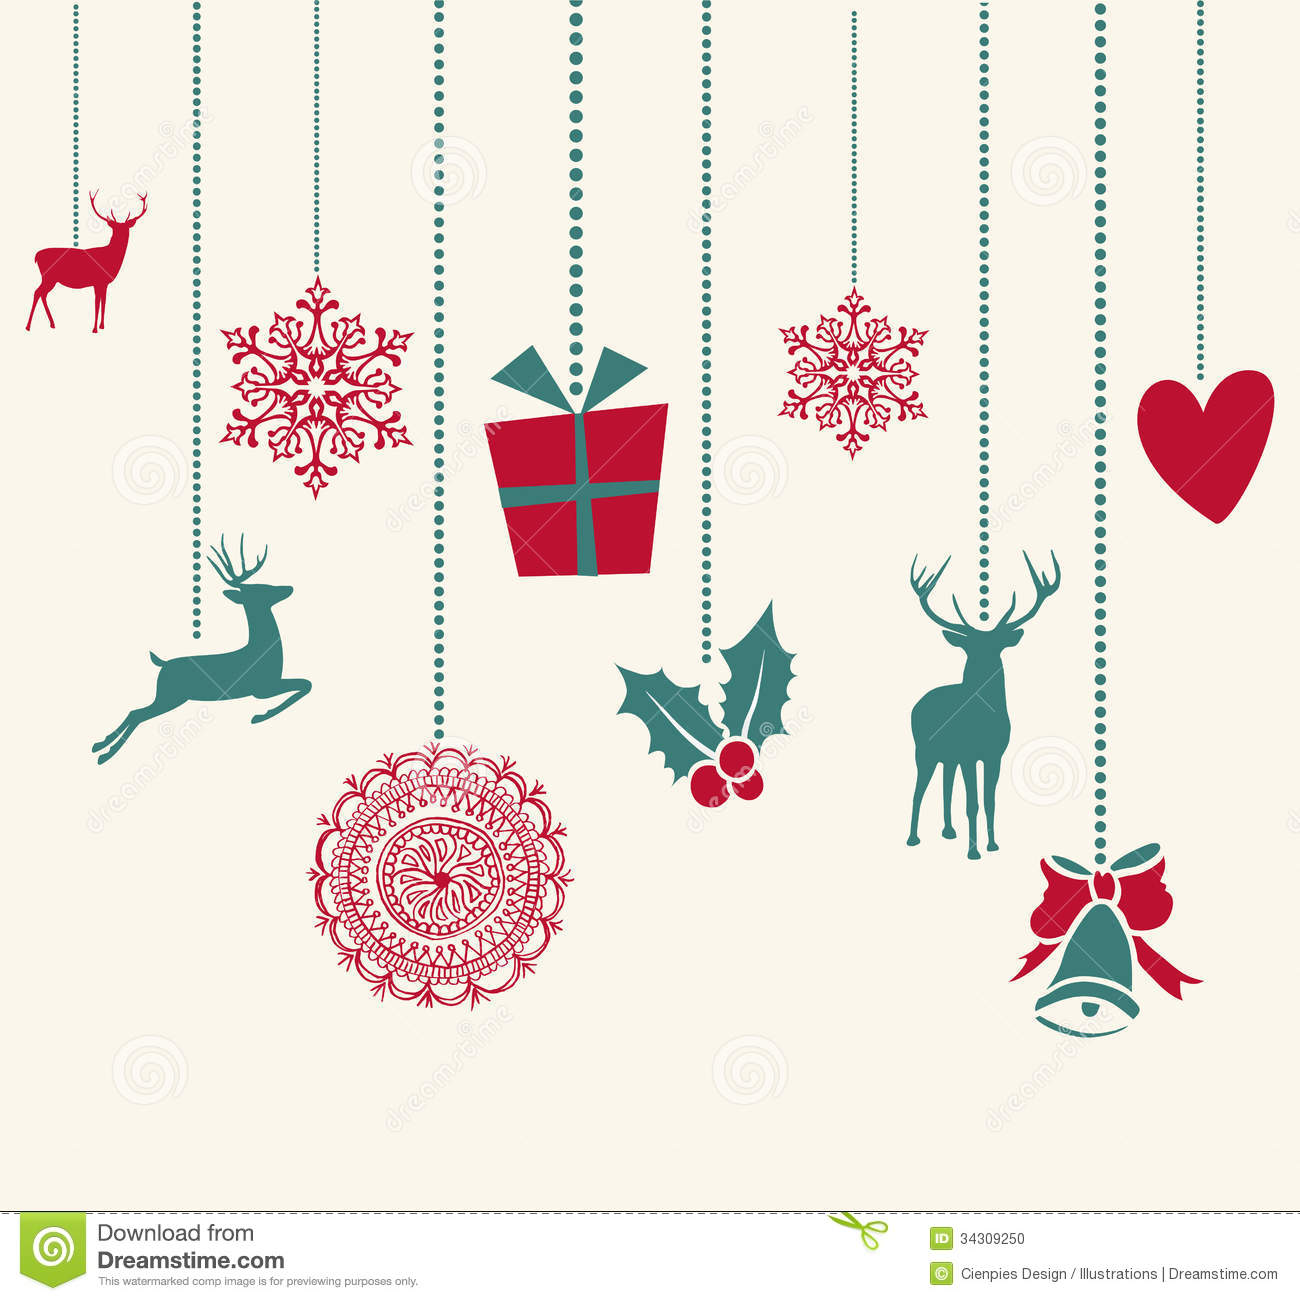 Merry christmas hanging decoration elements compos stock for Decoration elements